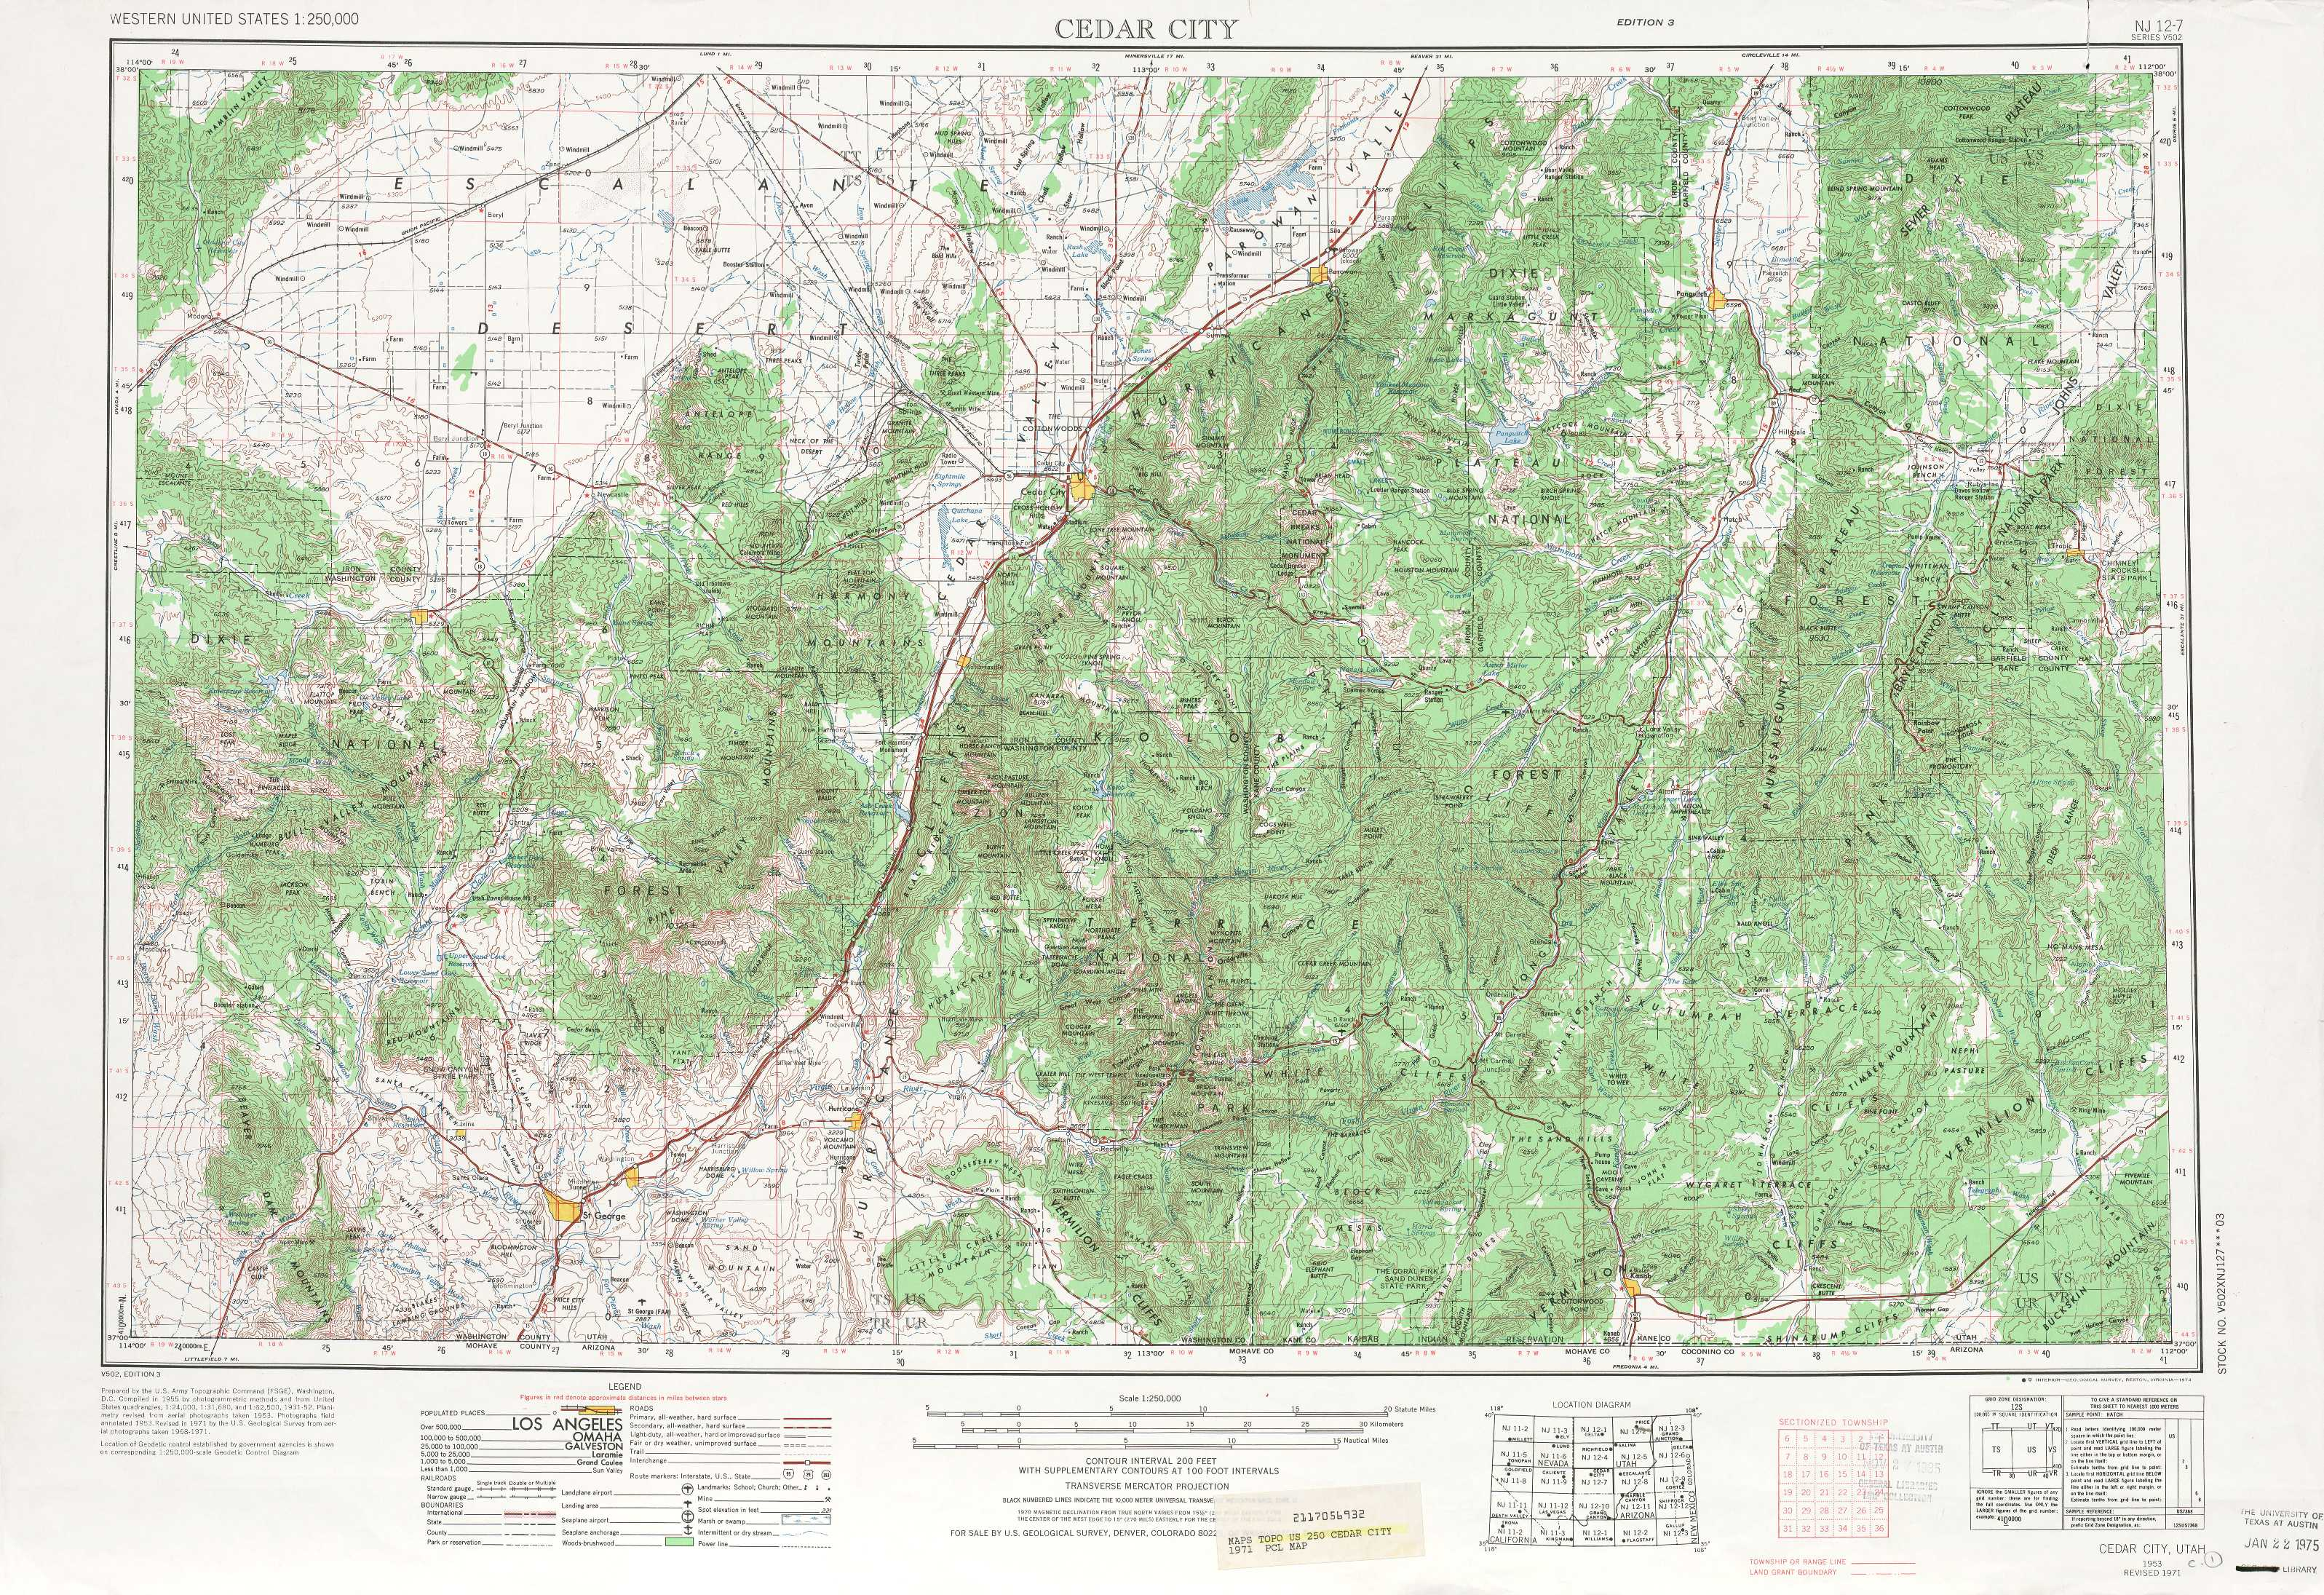 Cedar City topographic maps, UT - USGS Topo Quad 37112a1 at 1 ...